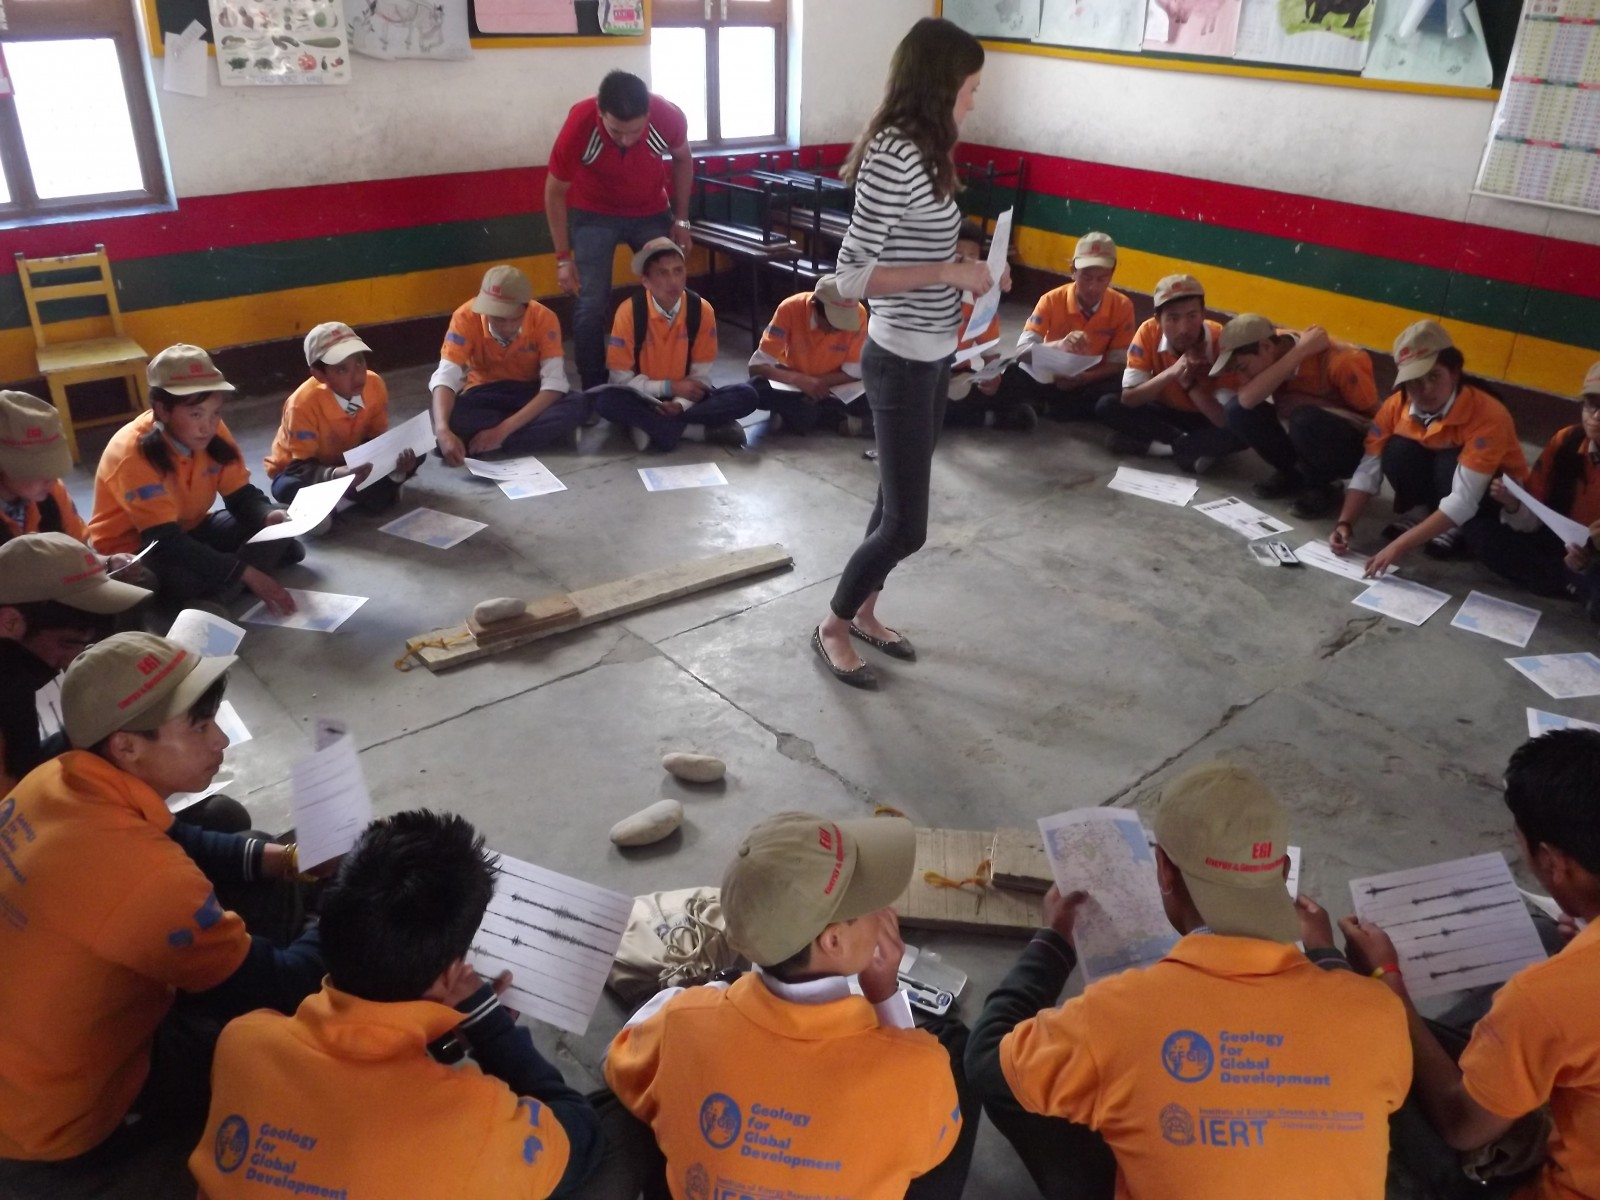 Rosalie Tostevin teaches children in Ladakh (India) about earthquake dynamics.